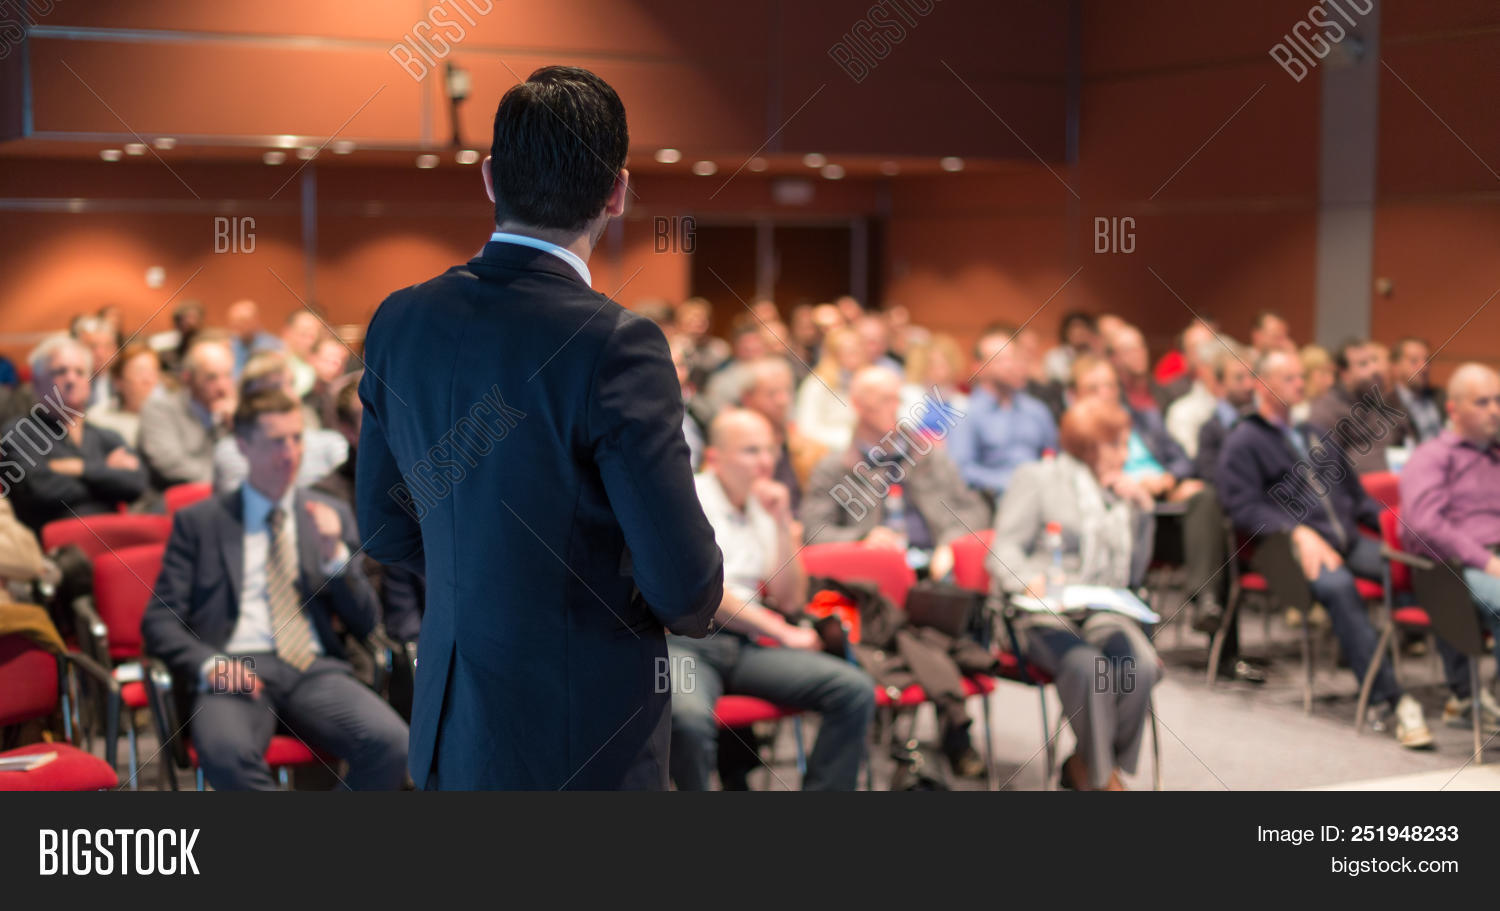 academic,audience,business,businessman,center,ceo,coaching,conference,congress,convention,cooperation,corporate,education,educator,entrepreneur,entrepreneurship,event,explaining,group,hall,indoors,information,institute,knowledge,leader,learn,lectern,lecture,male,man,manager,meeting,participants,people,podium,presentation,professional,public,rostrum,seminar,speaker,speech,study,summit,talk,teacher,teaching,training,university,workshop